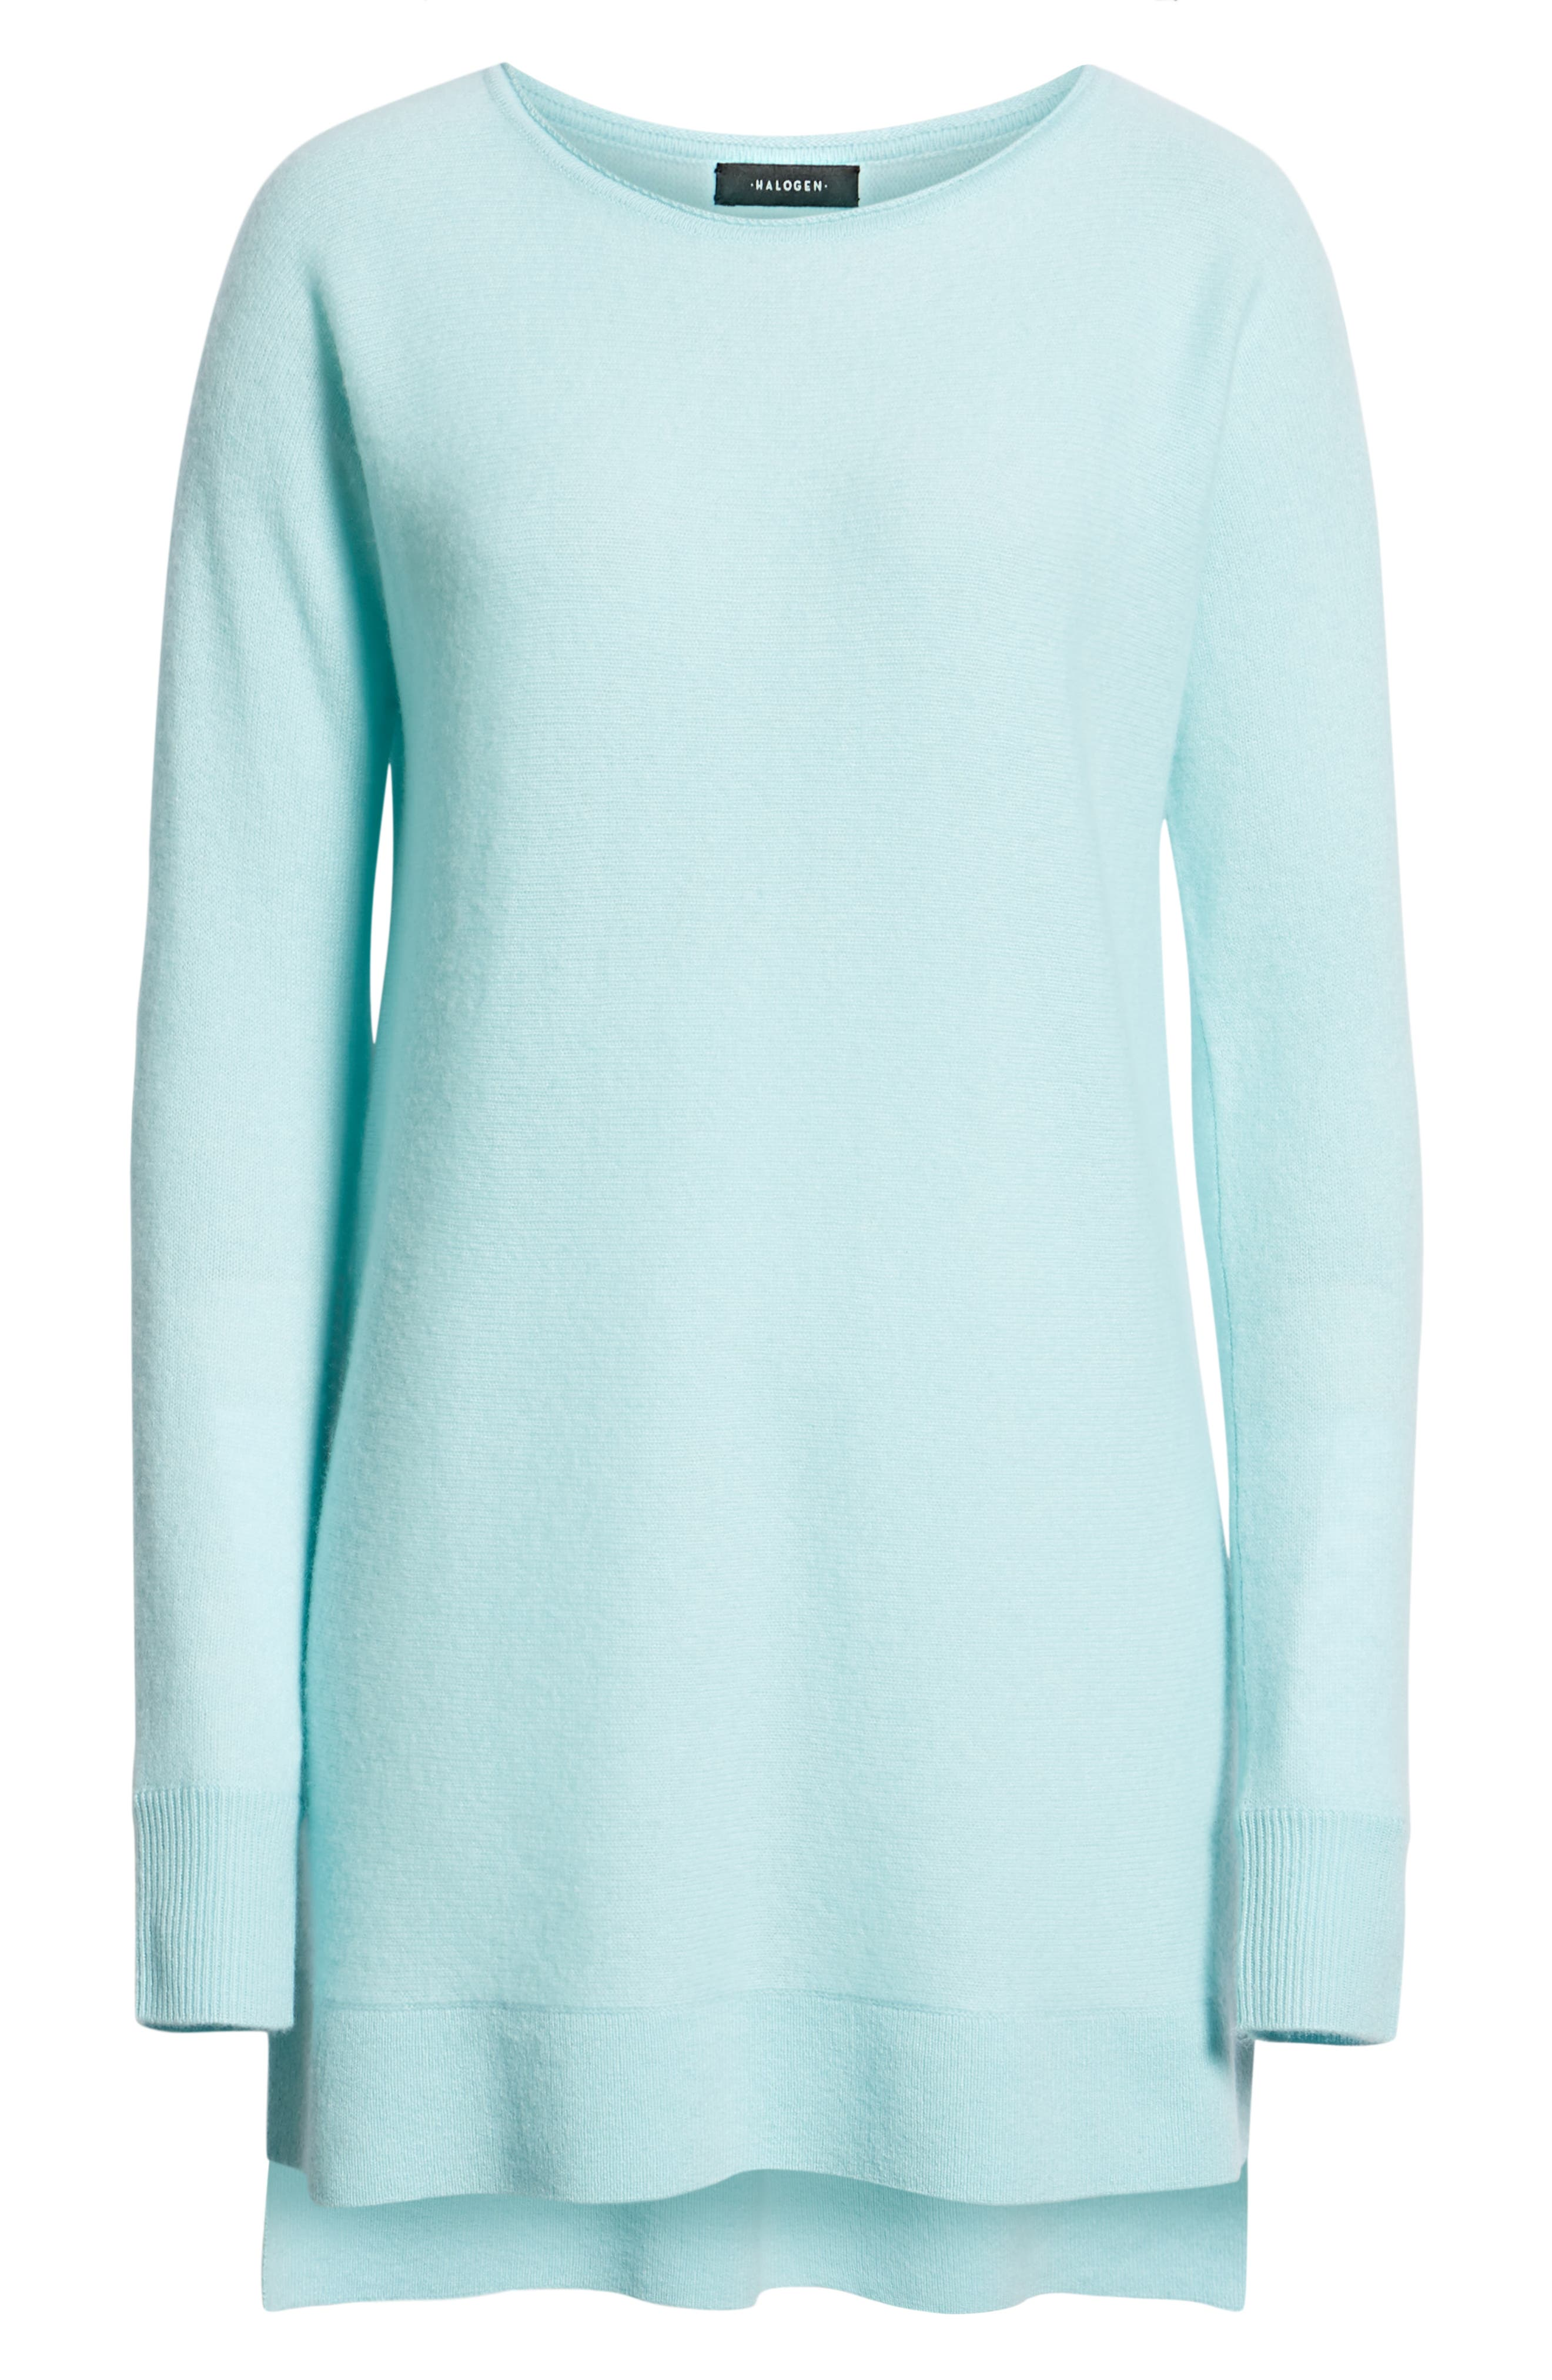 High/Low Wool & Cashmere Tunic Sweater,                             Alternate thumbnail 6, color,                             BLUE RESORT